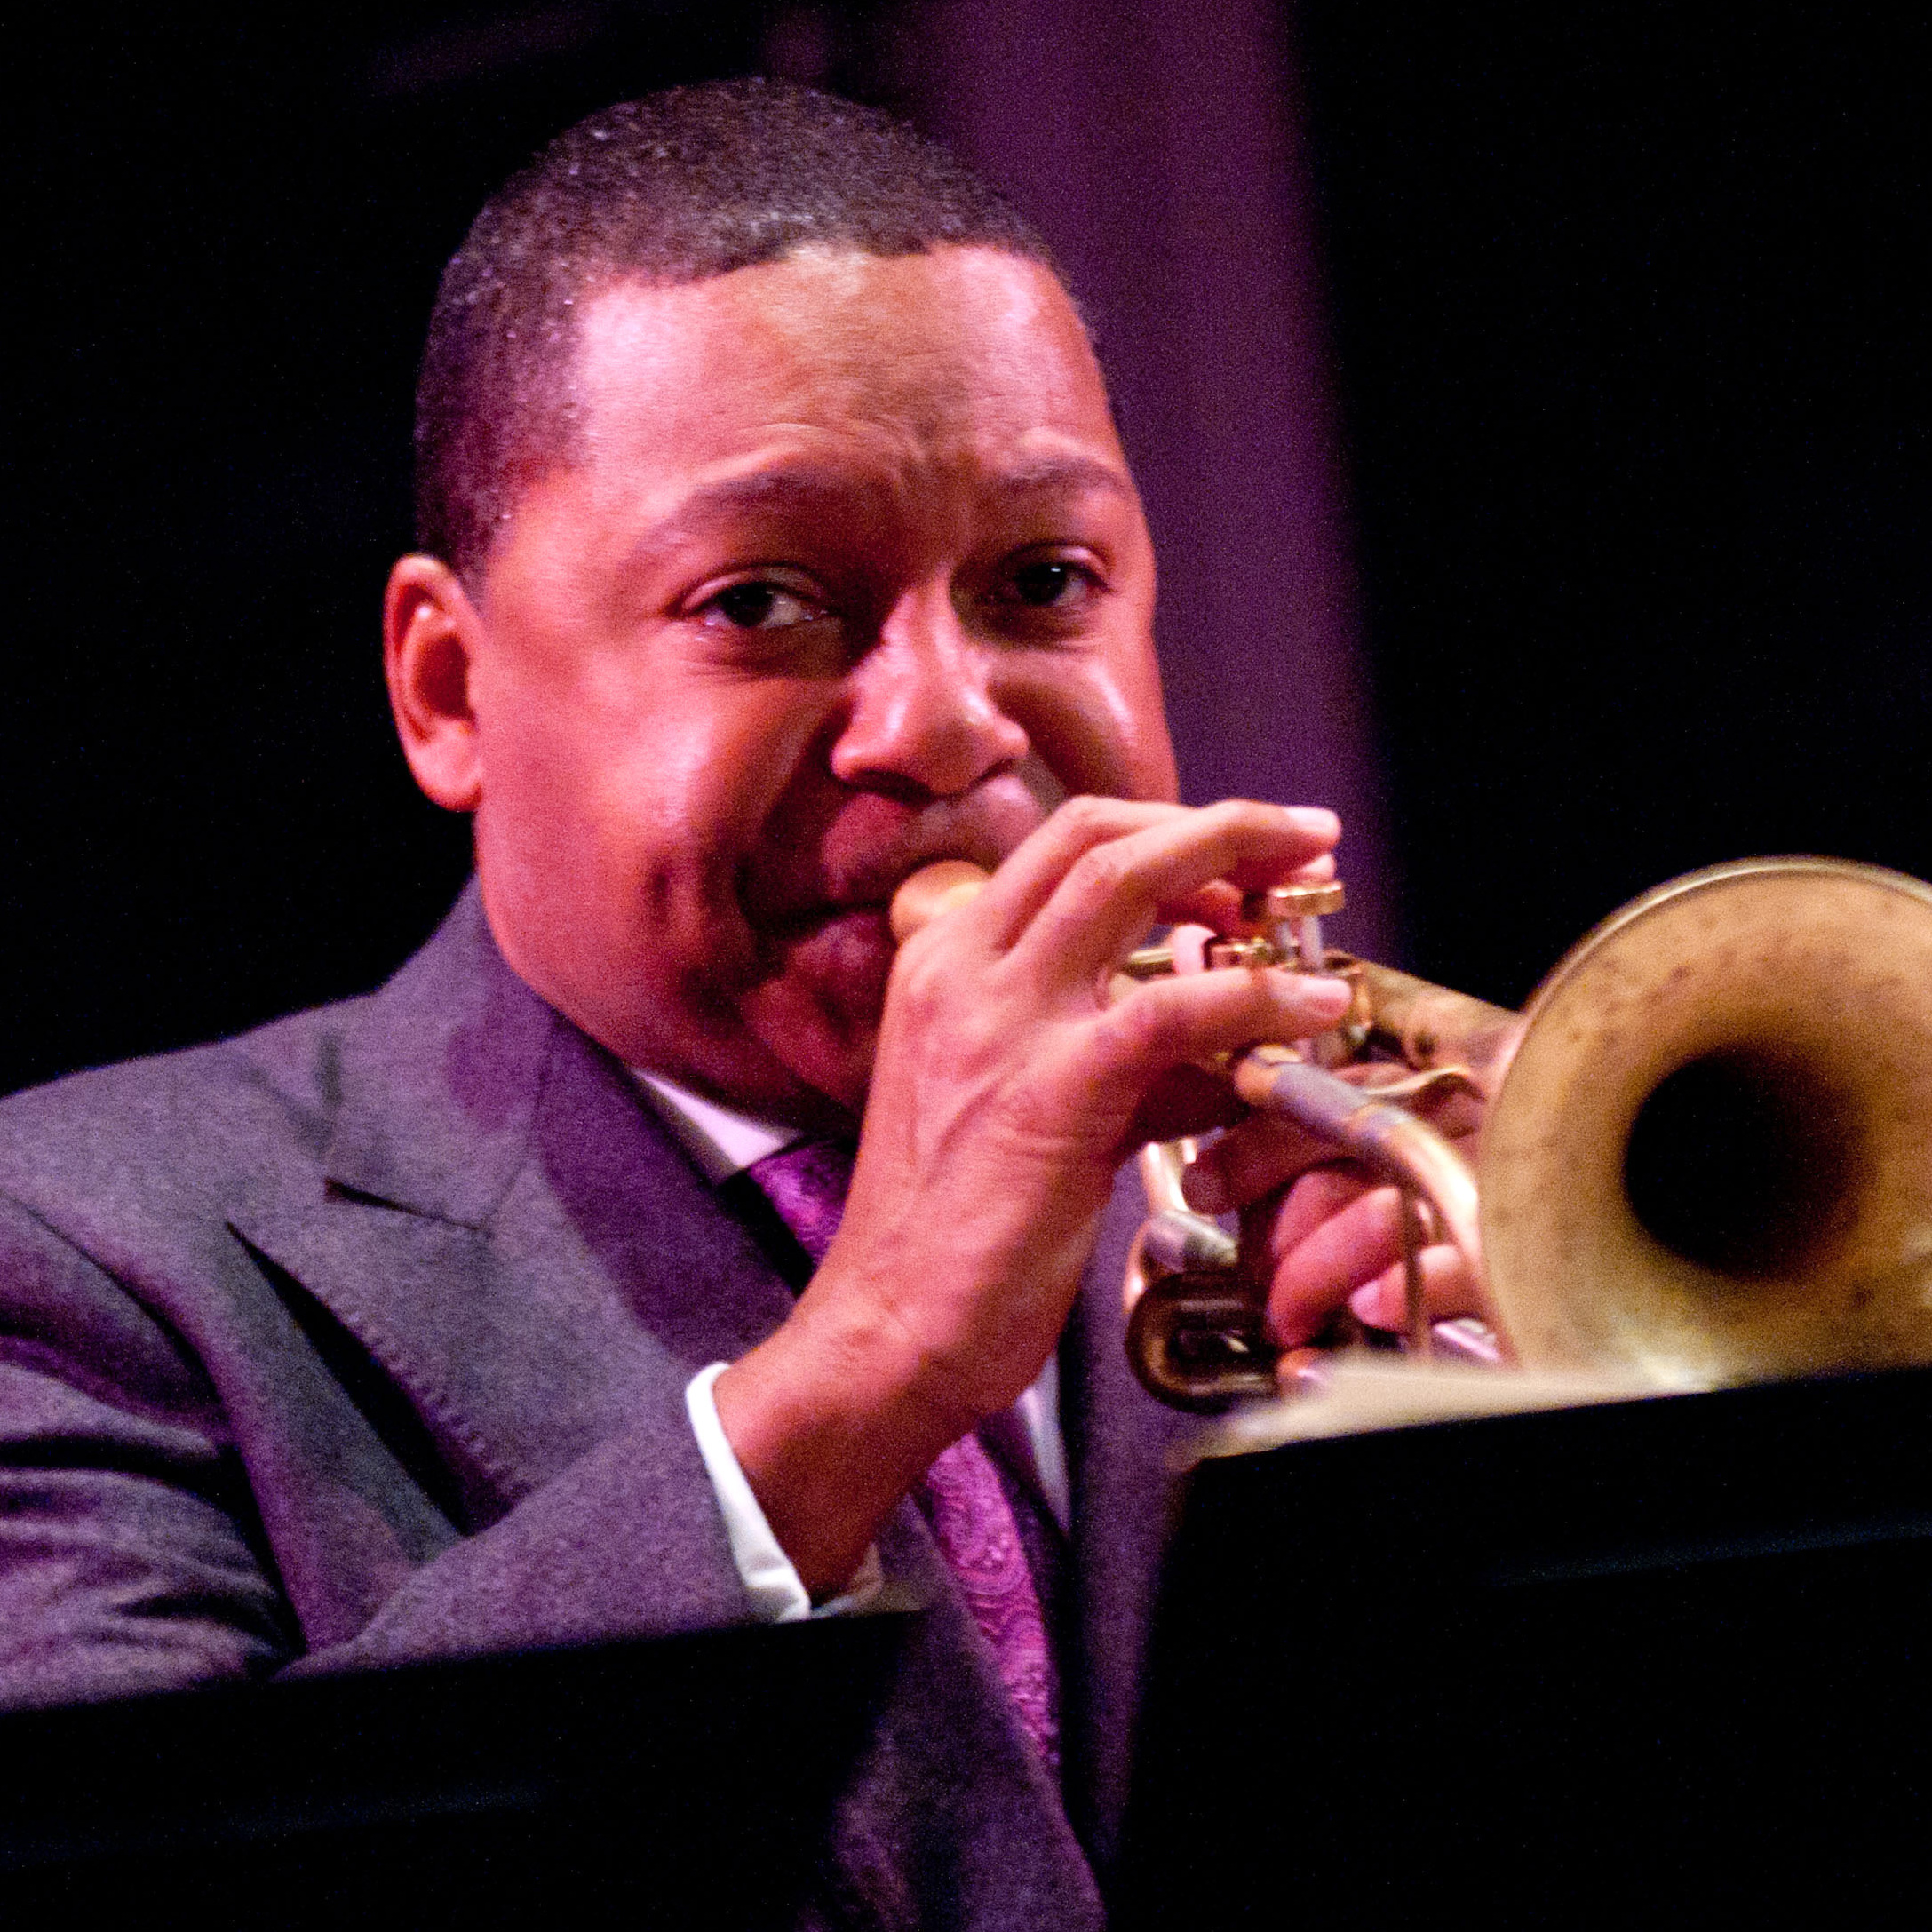 Wynton Marsalis performs at Dizzy's Club Coca-Cola in 2011.